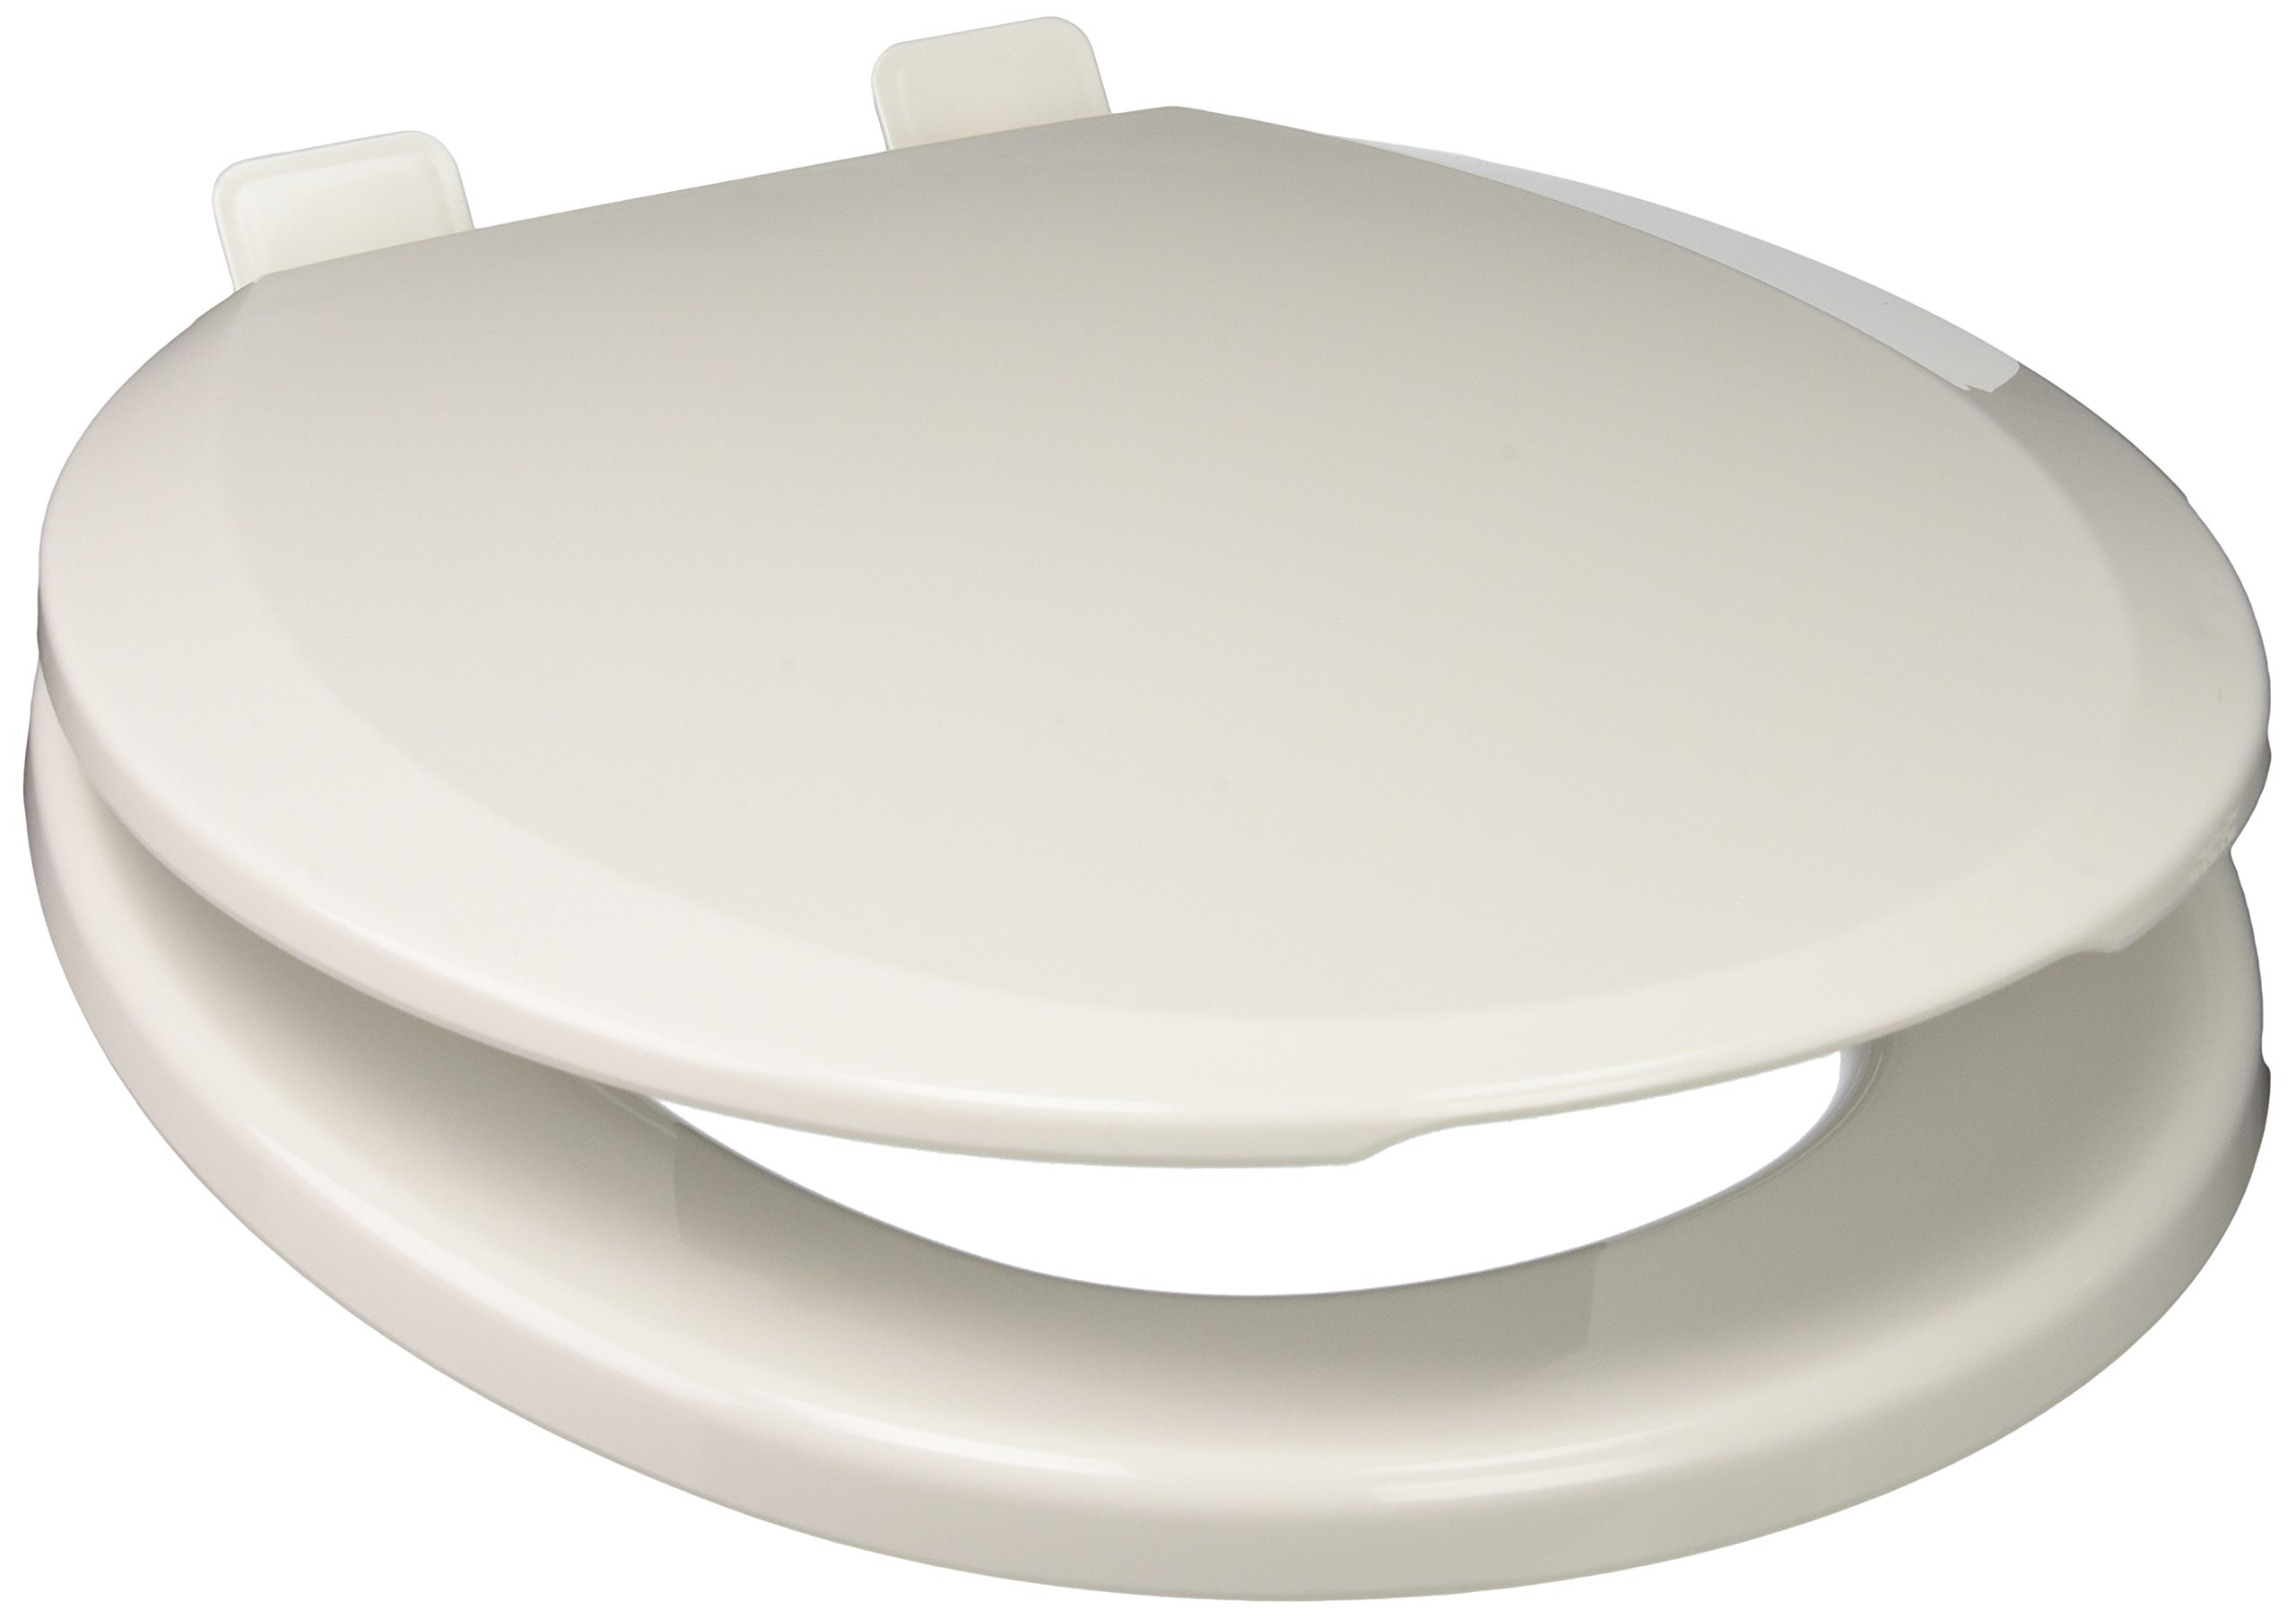 PlumbTech 250-00 Deluxe Slow Close Round Toilet Seat with Adjustable Hinge, White